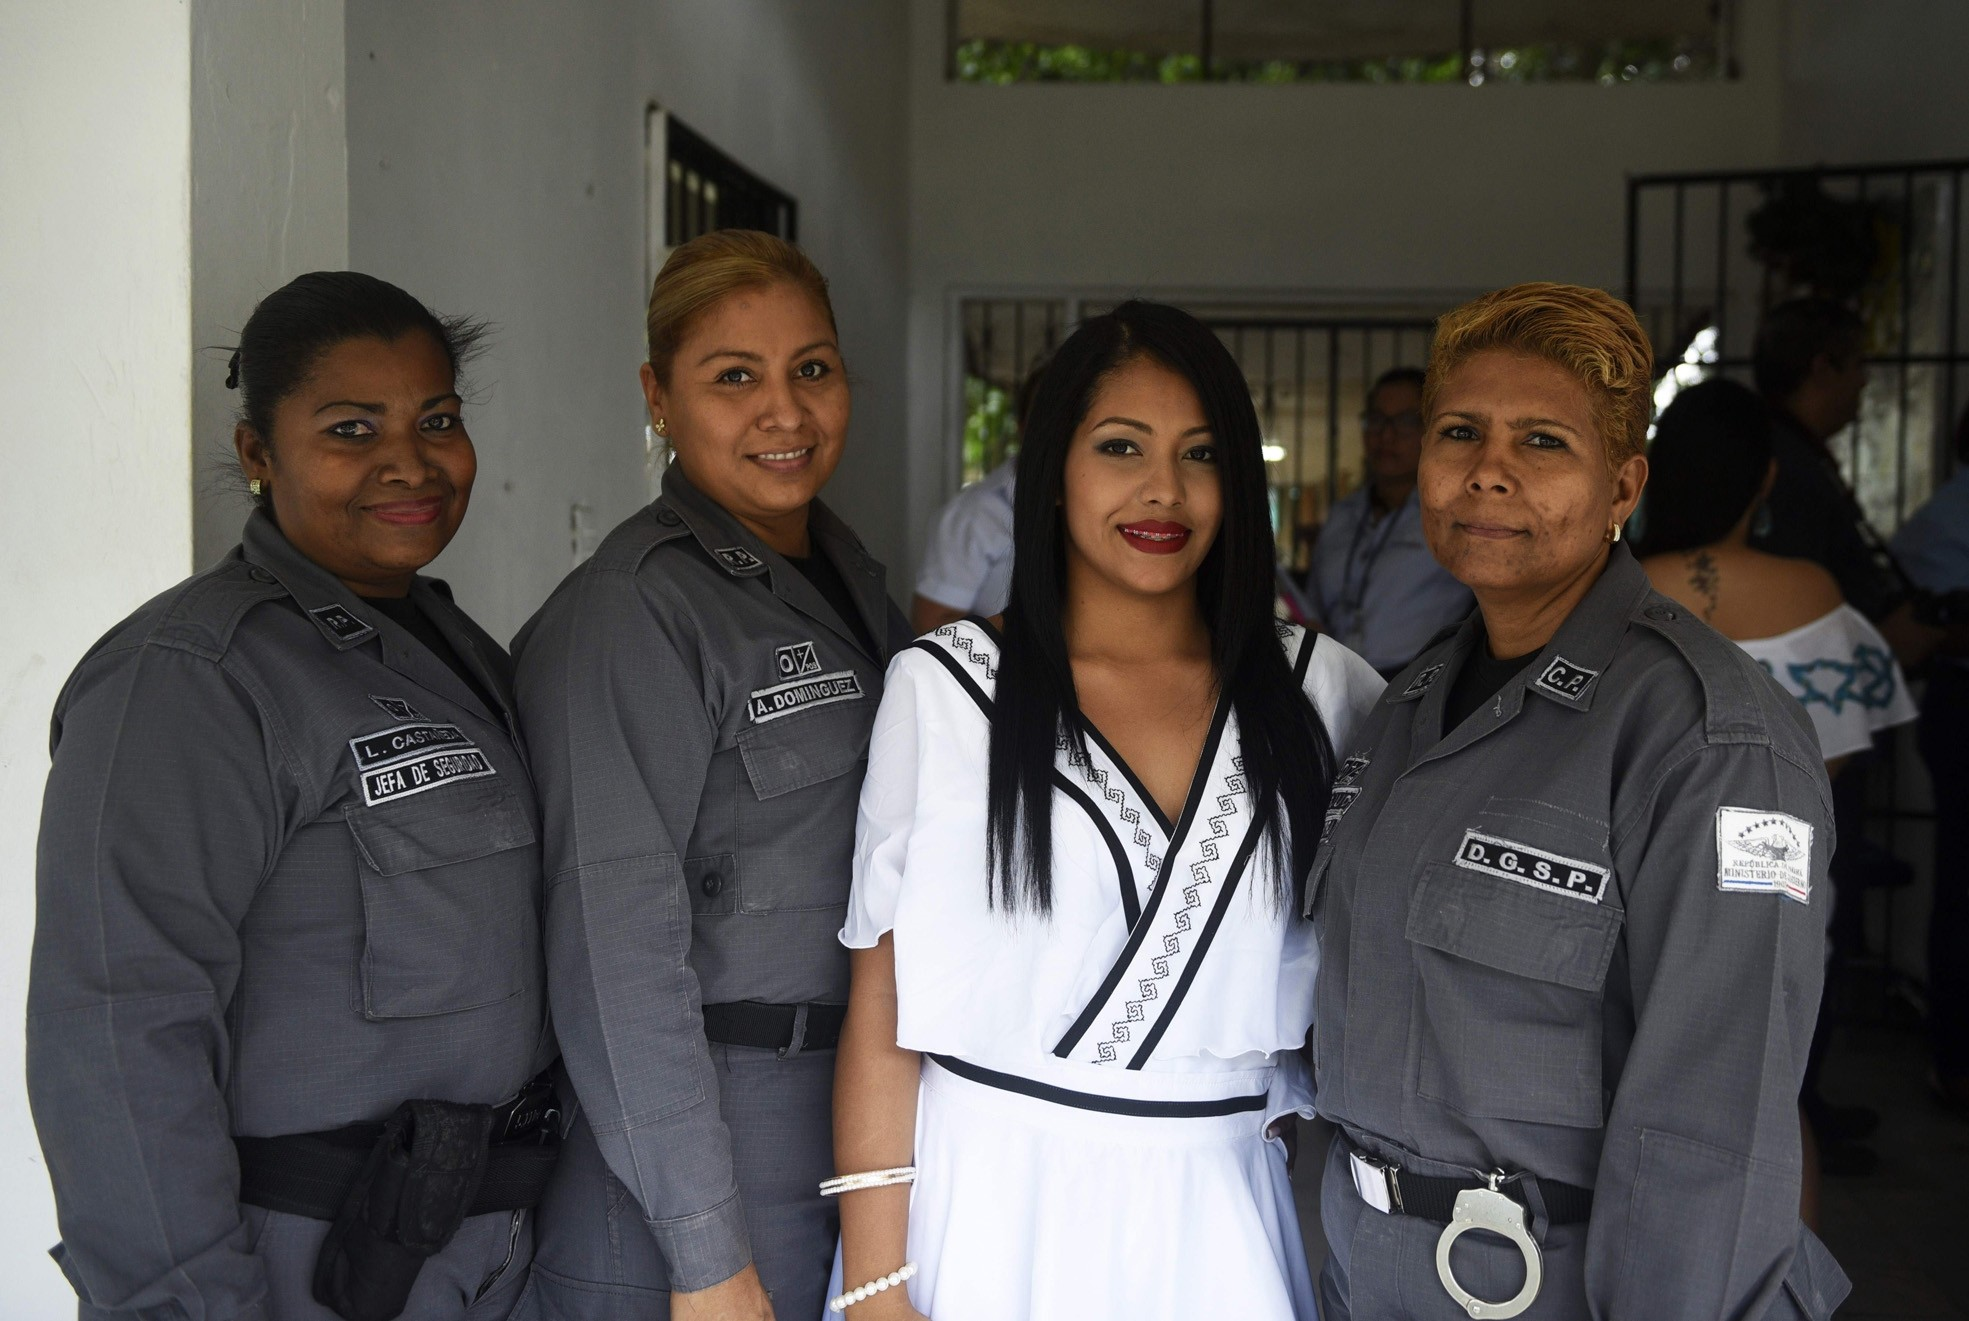 An inmate wearing a creation of the brand u201cIntegraArte,u201d poses next to guards at the u201cCecilia Orillac de Chiariu201d Womenu2019s Rehabilitation Centre in Panama City.